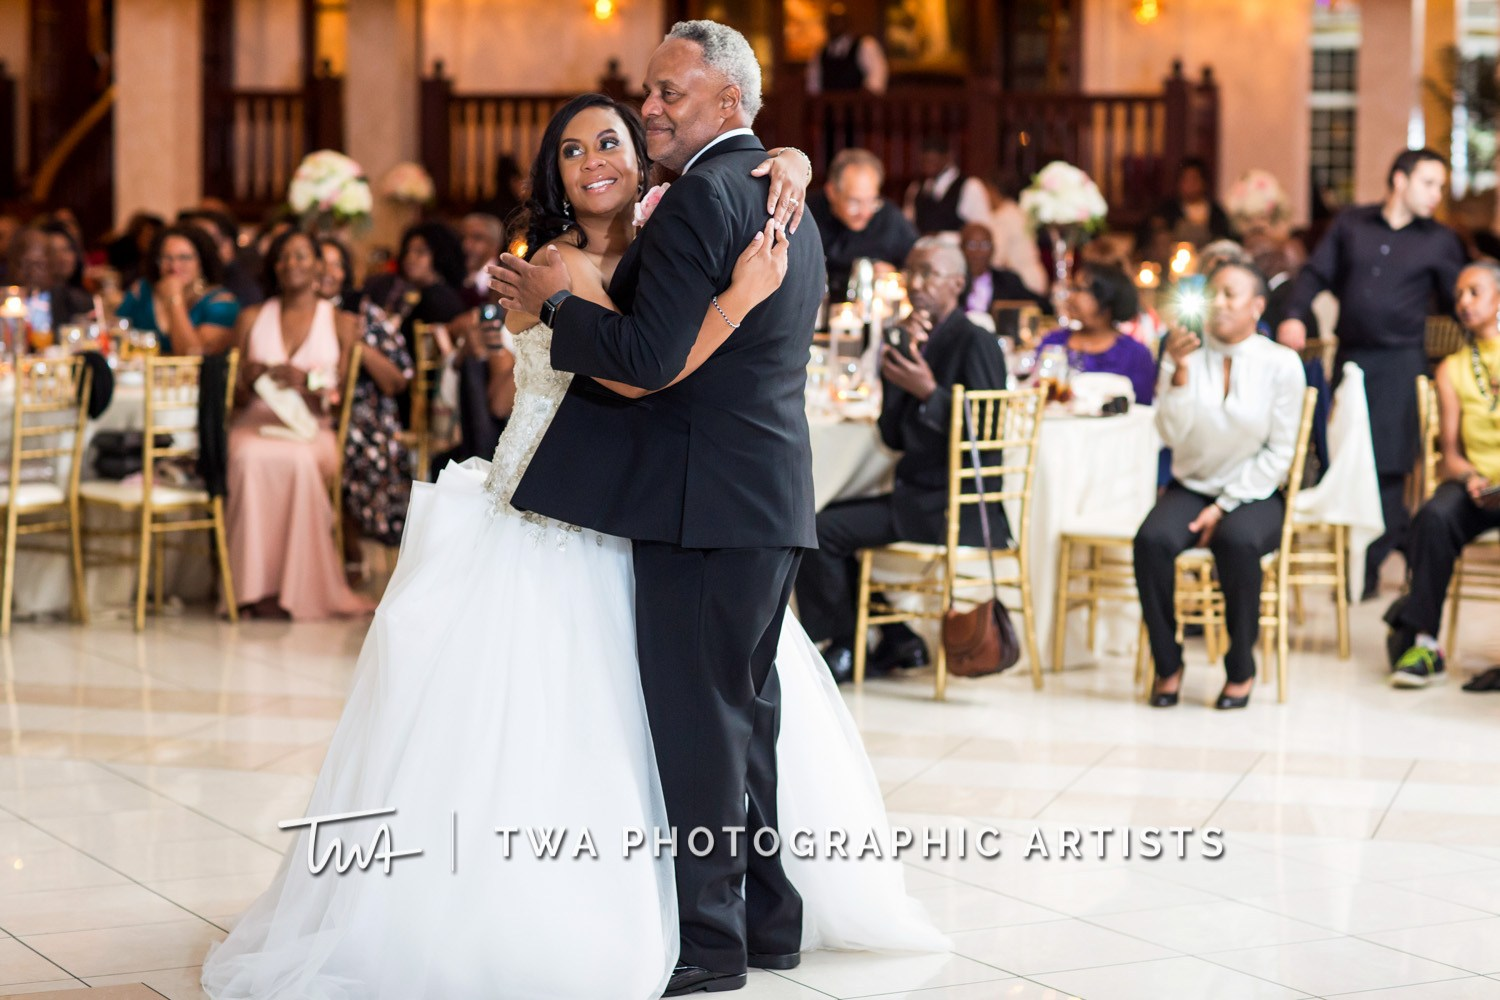 Chicago-Wedding-Photographer-TWA-Photographic-Artists-Haley-Mansion_Graves_Moffett_JM-046_0673